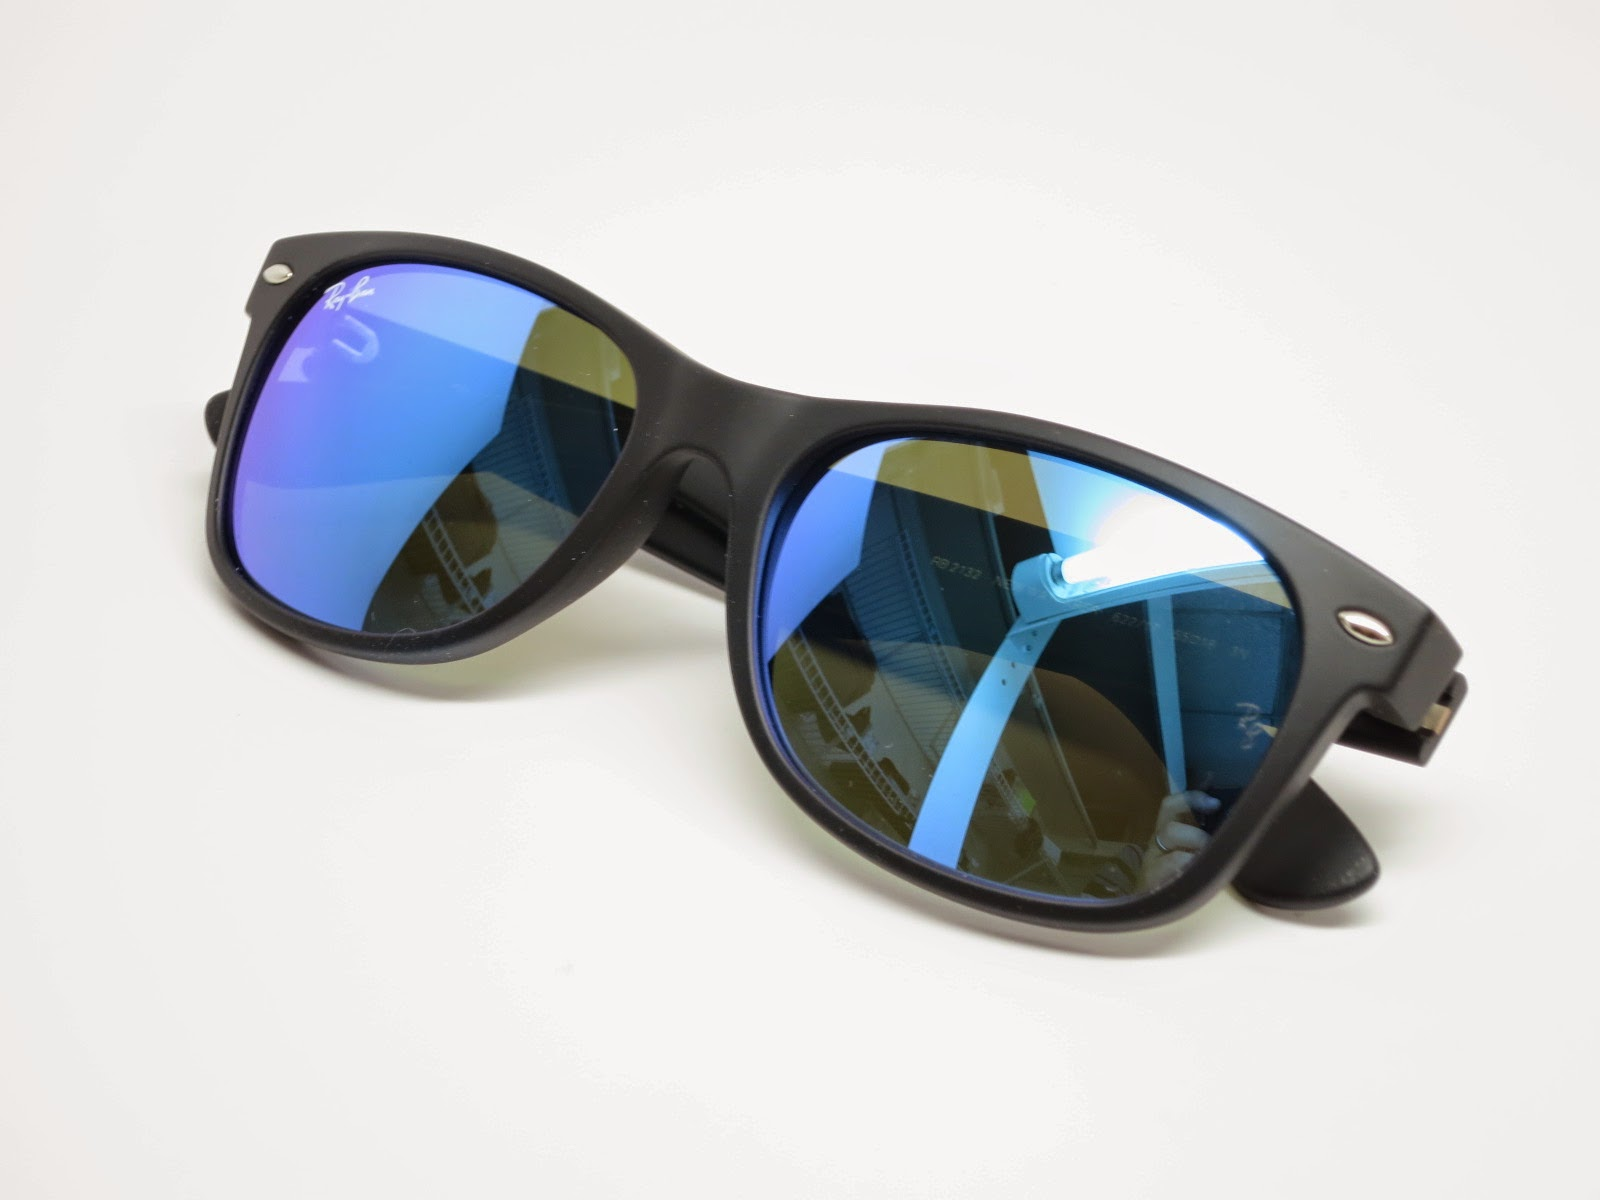 06bc5c28db Ray-Ban RB 2132 New Wayfarer 622 17 Blue Mirrored Sunglasses